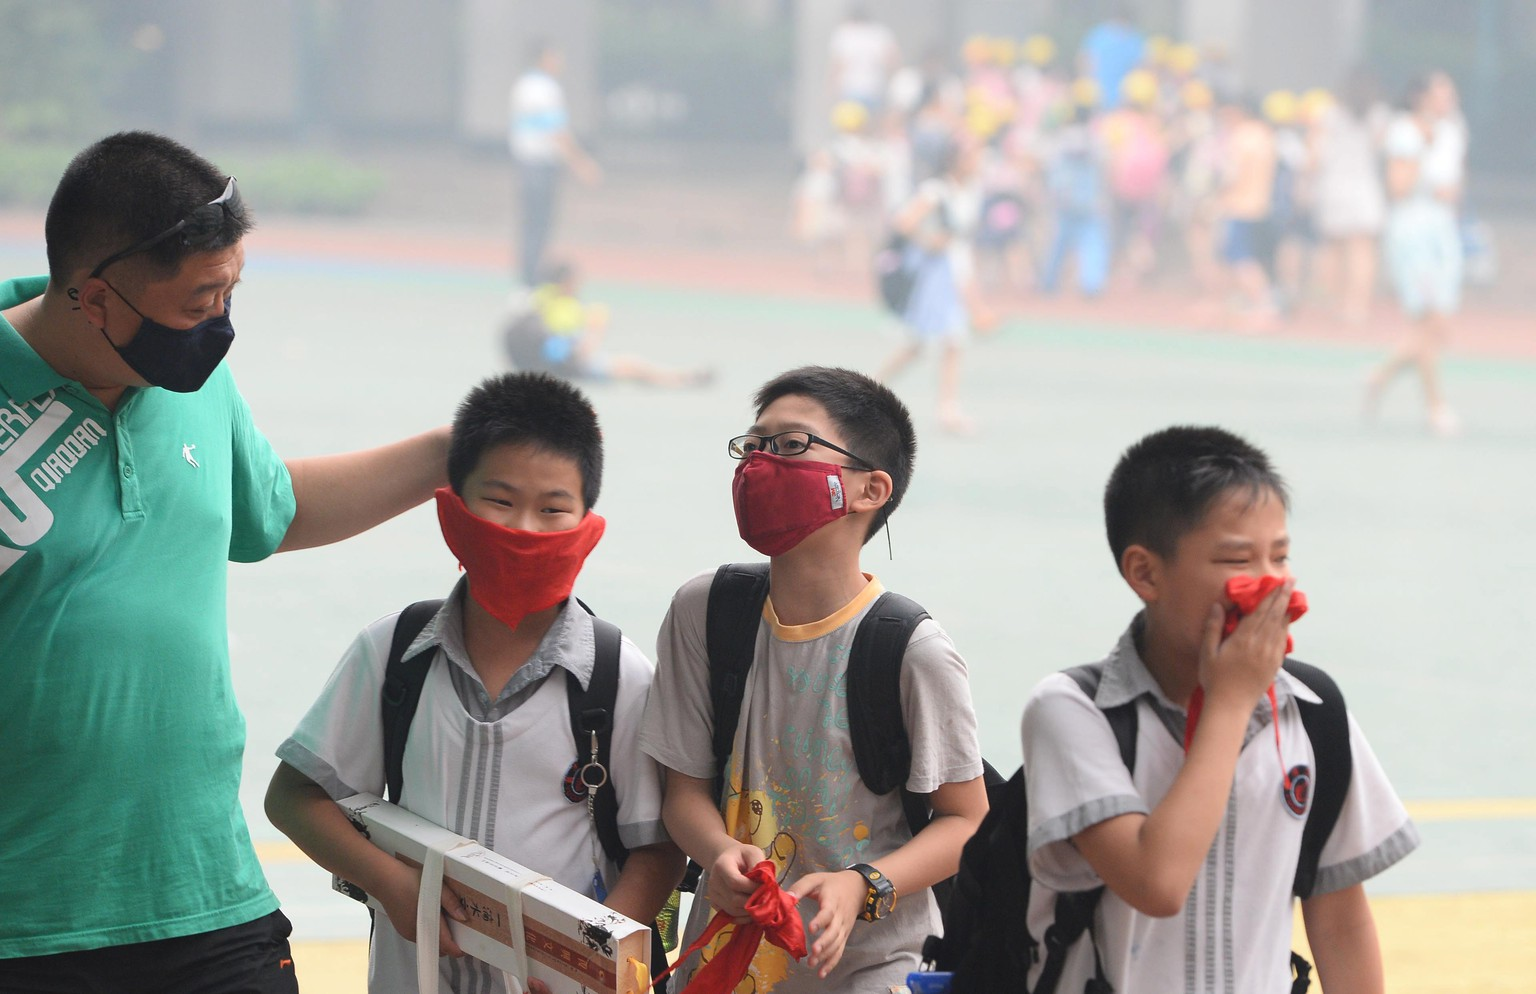 WUHAN, CHINA - JUNE 12: (CHINA OUT) A man with three students wear breath mask at the haze shrouded Hankou district on June 12, 2014 in Wuhan, Hubei province of China. Haze shrouded China,'s southeast city Wuhan on June 12 and the air quality index at 6pm reached 410. (Photo by ChinaFotoPress)***_*** (FOTO: DUKAS/CHINAFOTOPRESS)